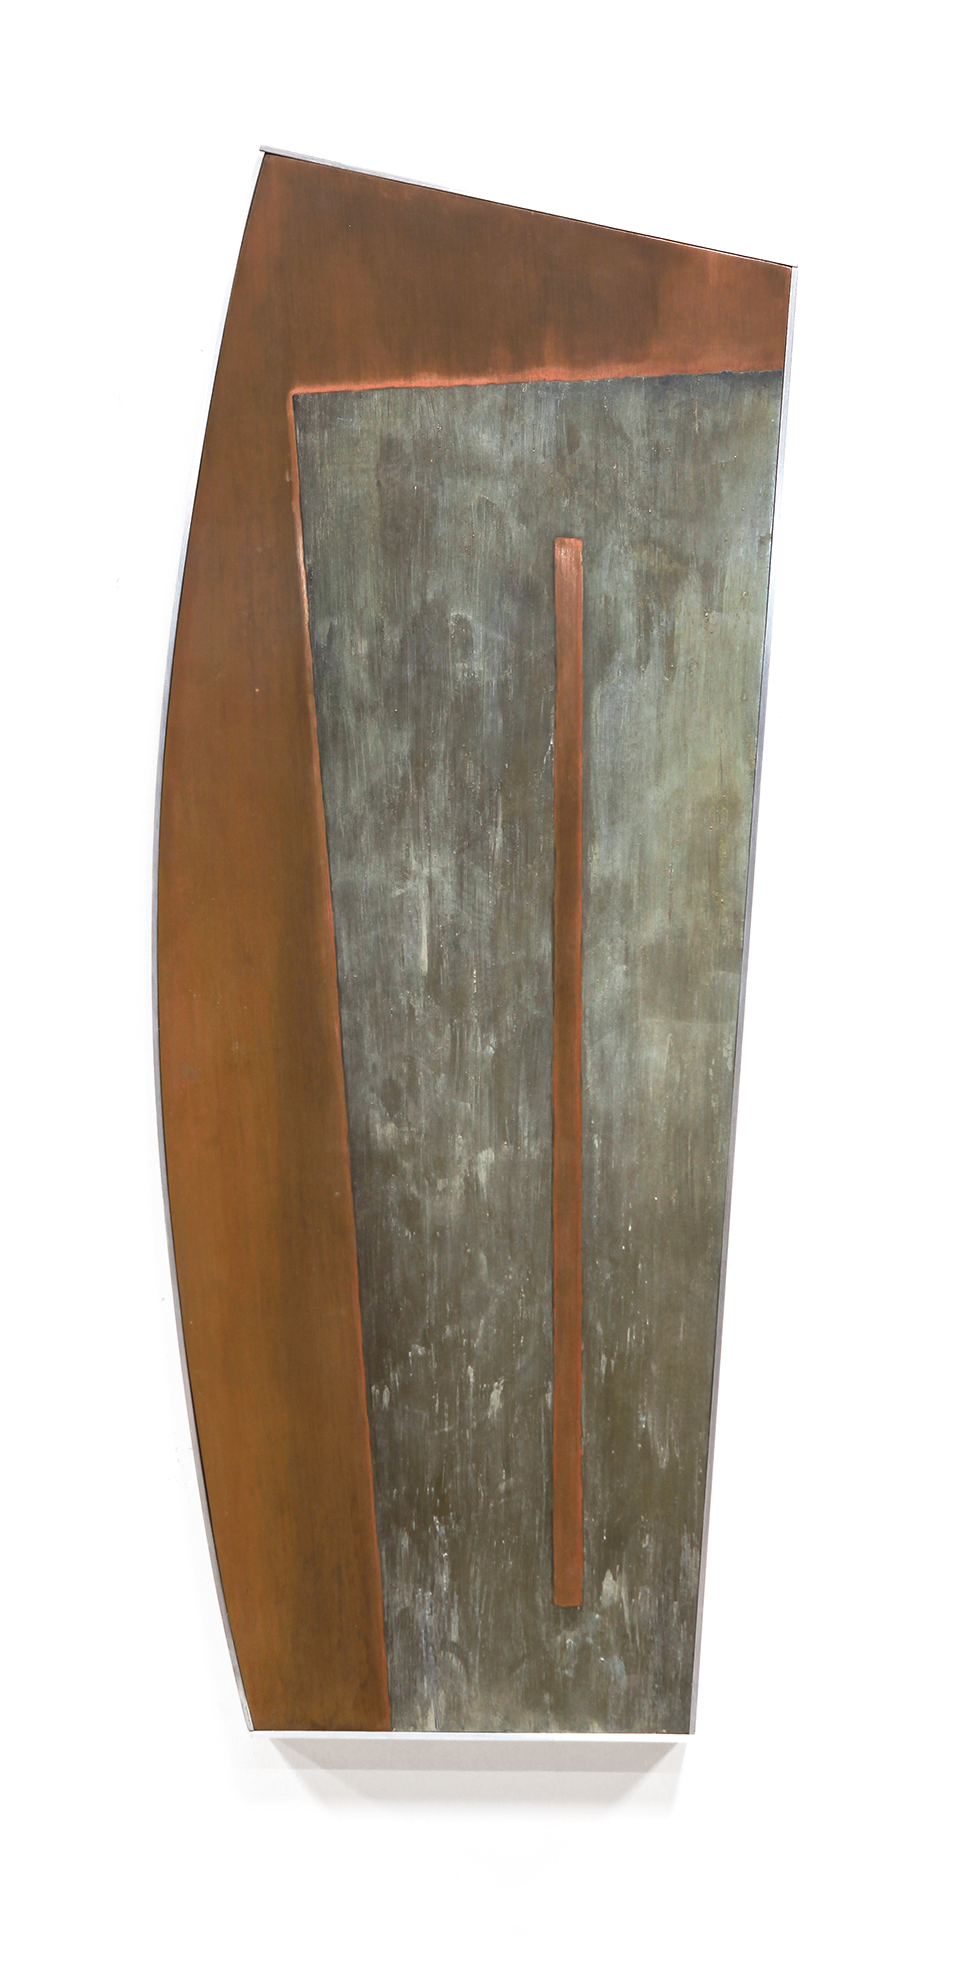 "Linear Composition No. 9 (study) , Sep. 2014, copper, tin, pine, plywood aluminum., 30 1/2""h x 12""w x 2""d"